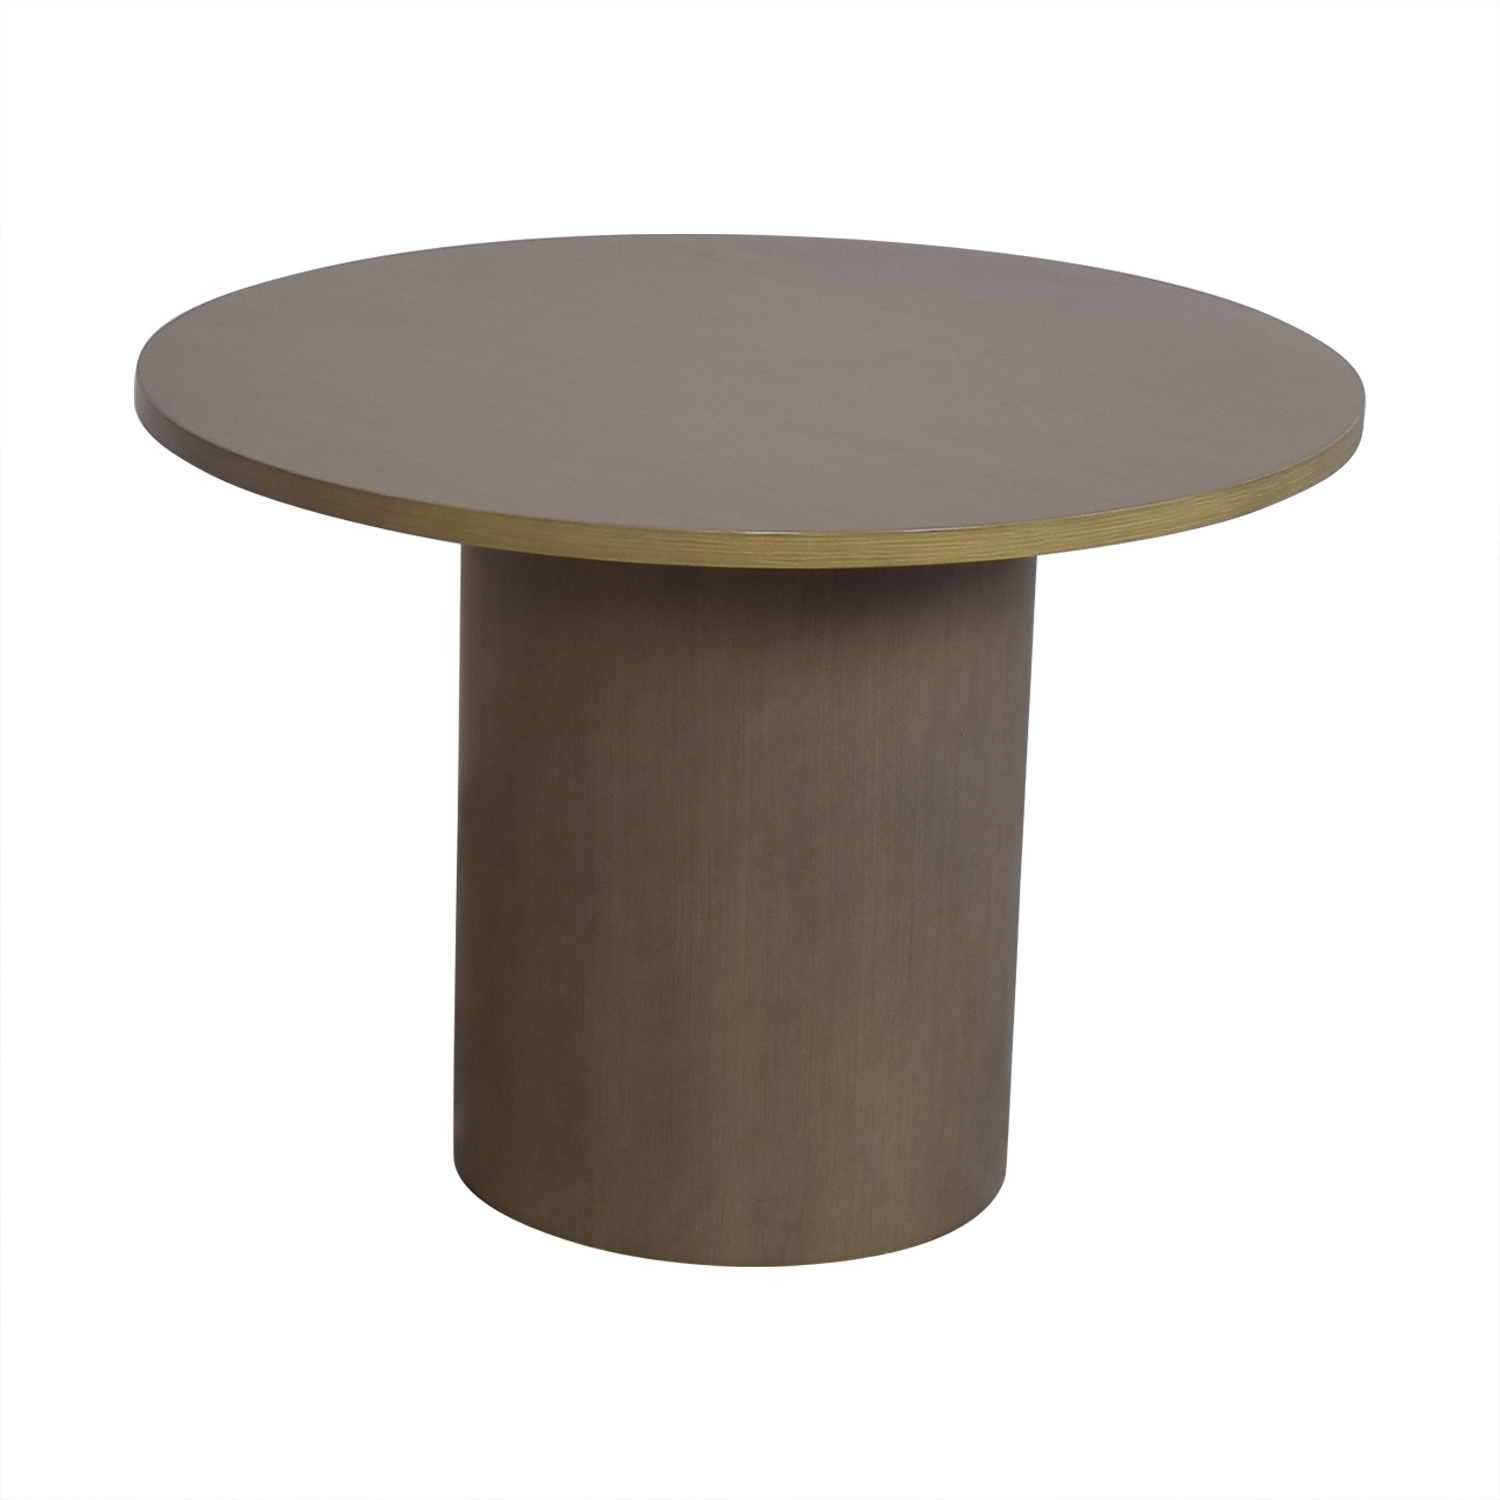 Pedestal Dining Table used